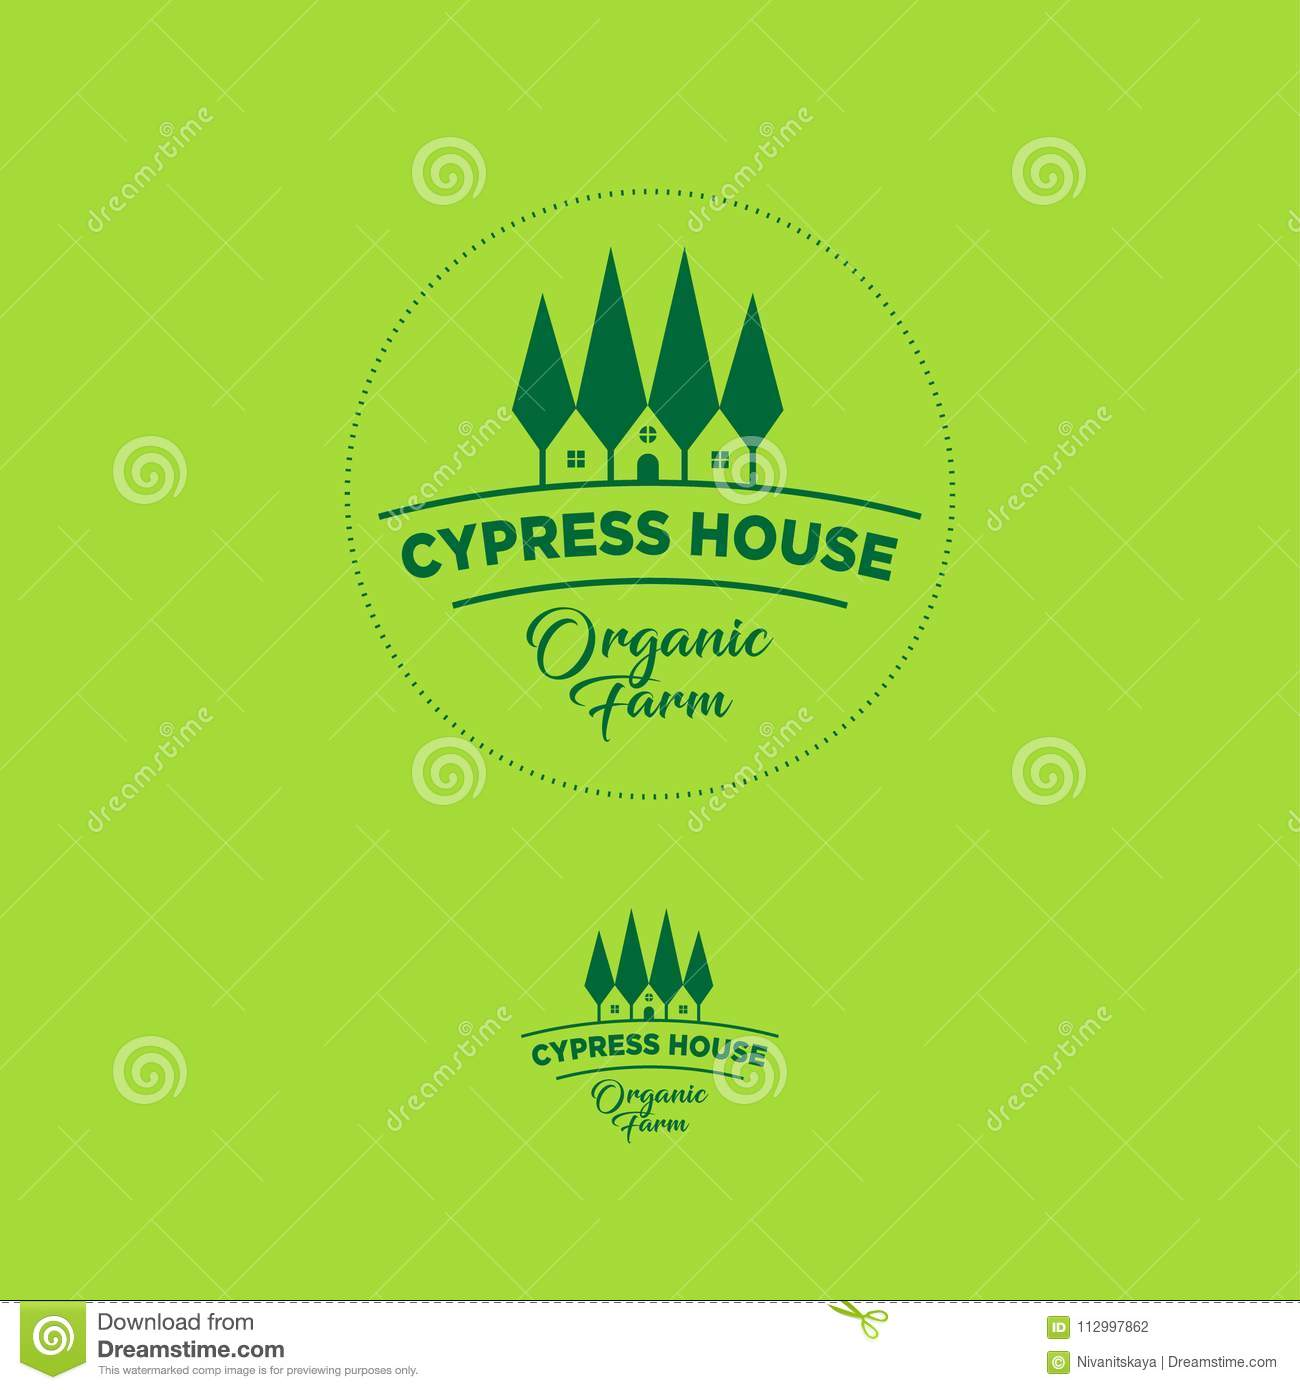 Organic Farm Emblem Cypress Tree House Logo Stock Vector Illustration Of Emblem Product 112997862